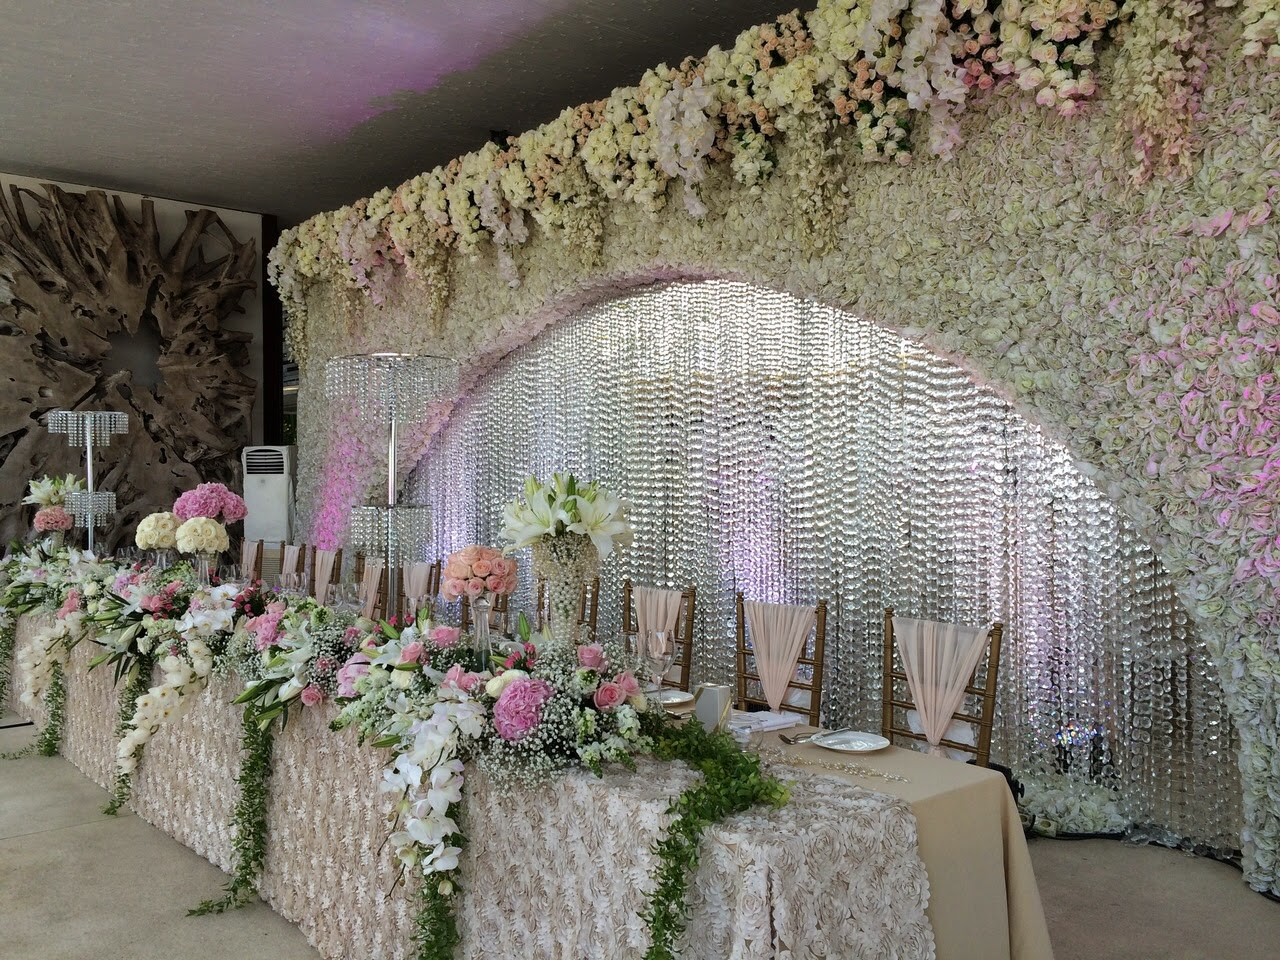 Wedding decoration jakarta lotus images wedding dress decoration wedding decoration jakarta lotus choice image wedding dress wedding decoration jakarta lotus choice image wedding dress junglespirit Gallery